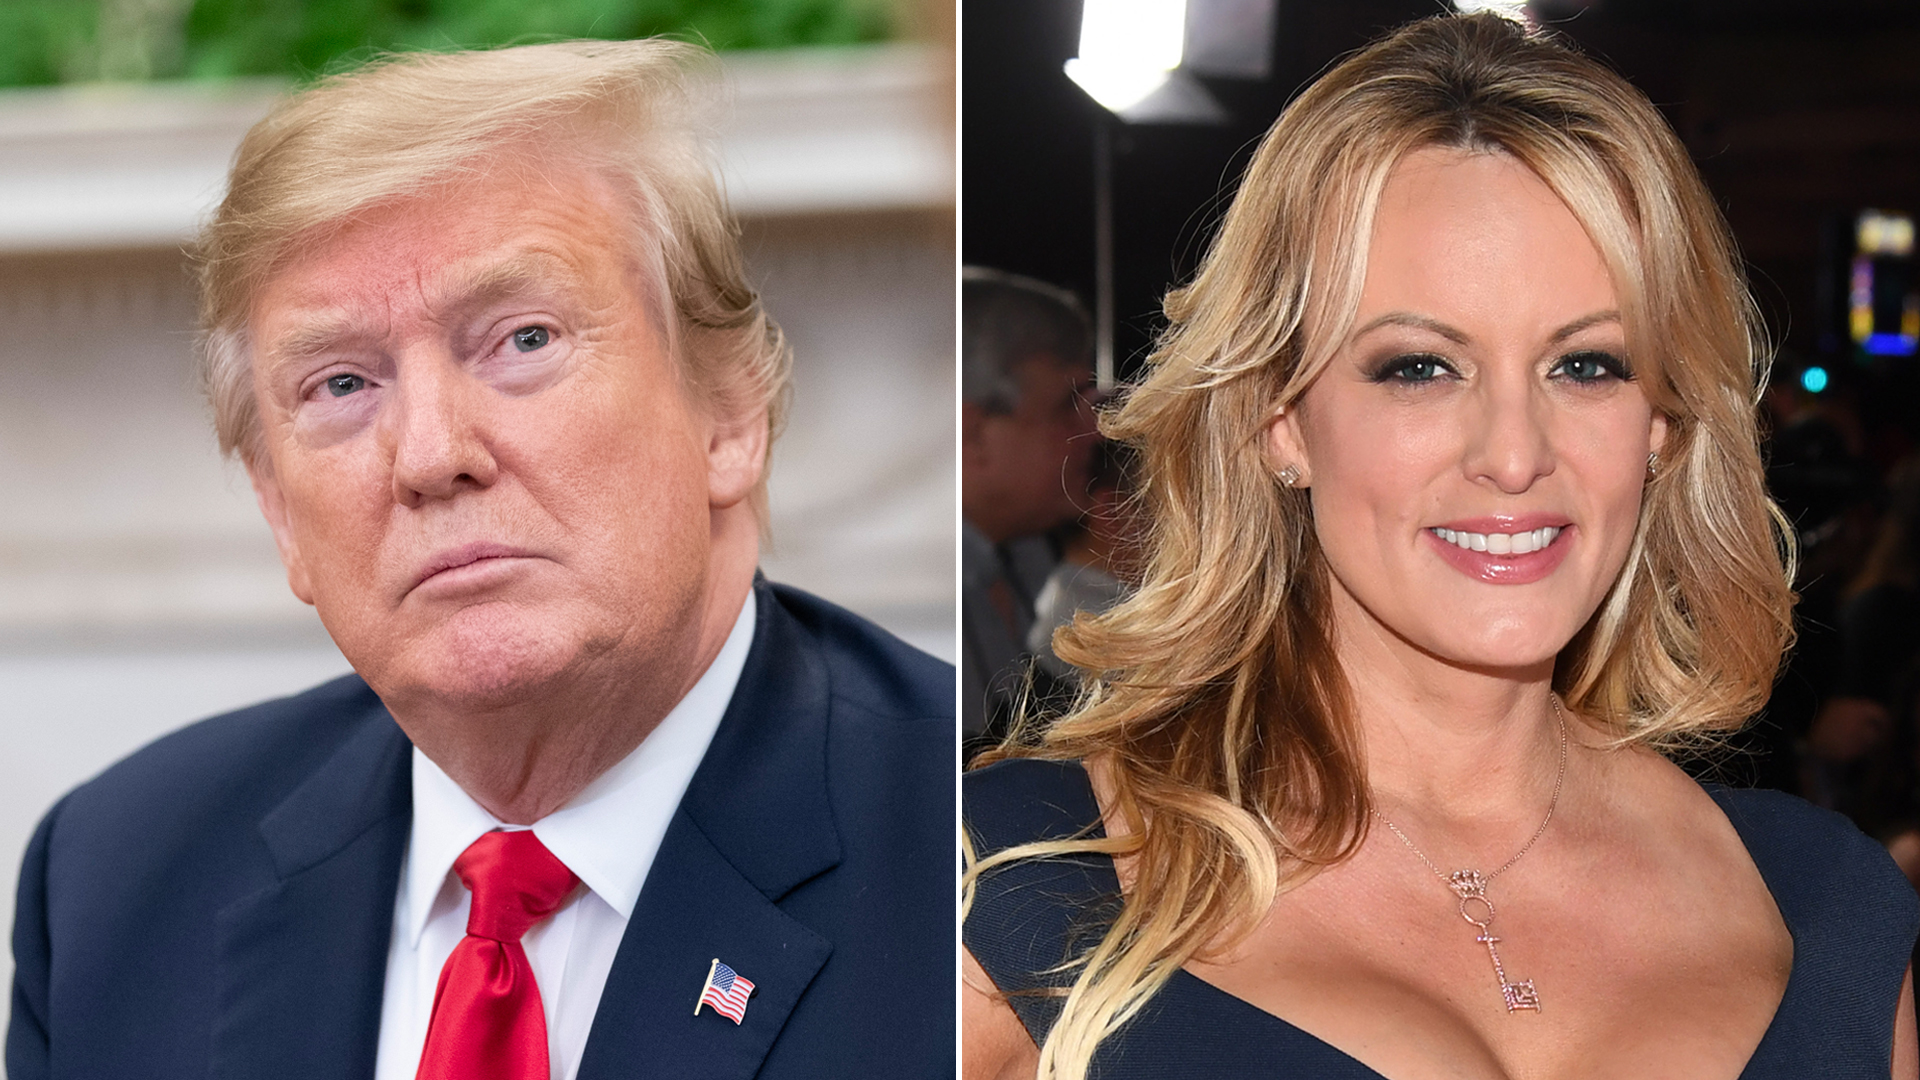 From left: President Donald Trump is seen during a meeting in the Oval Office on March 7, 2019, and director and actress Stormy Daniels attends the Adult Video News Awards in Las Vegas on Jan. 26, 2019. (Credit: Alex Edelman / Ethan Miller / Getty Images)